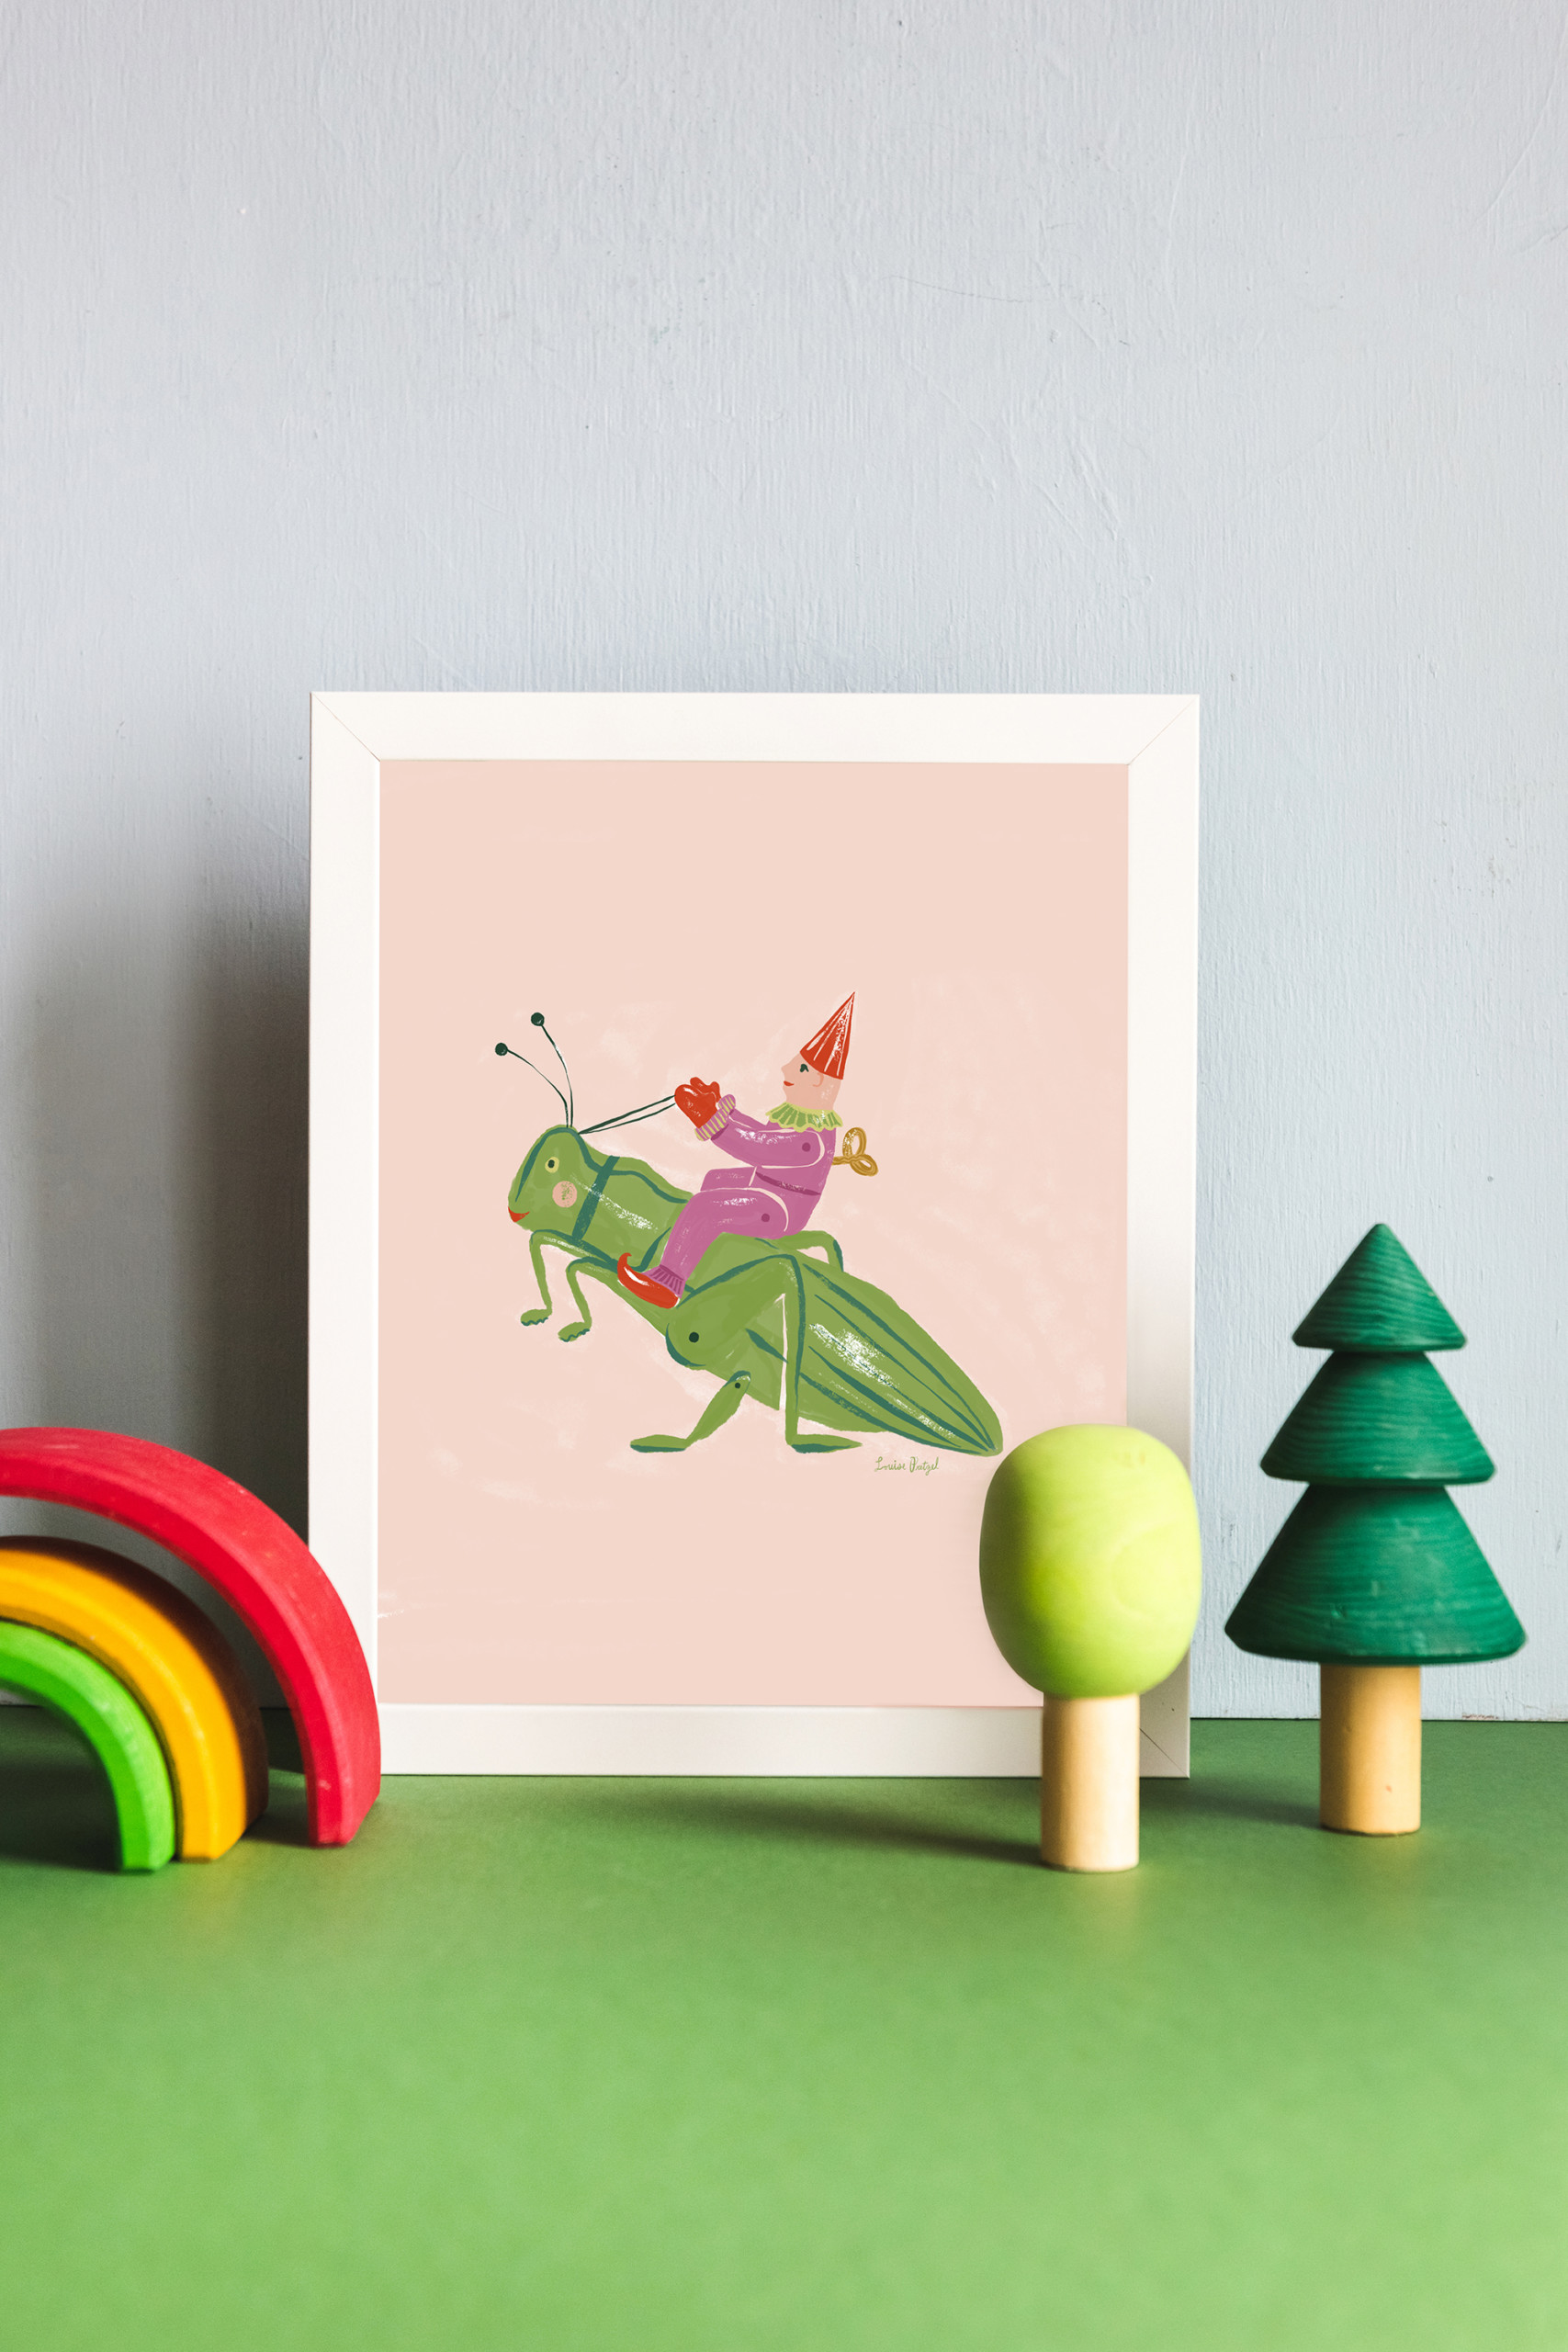 A print of Louise Pretzel's Grasshopper leaning against a light blue wall with wooden rainbow and tree toys in front of it.